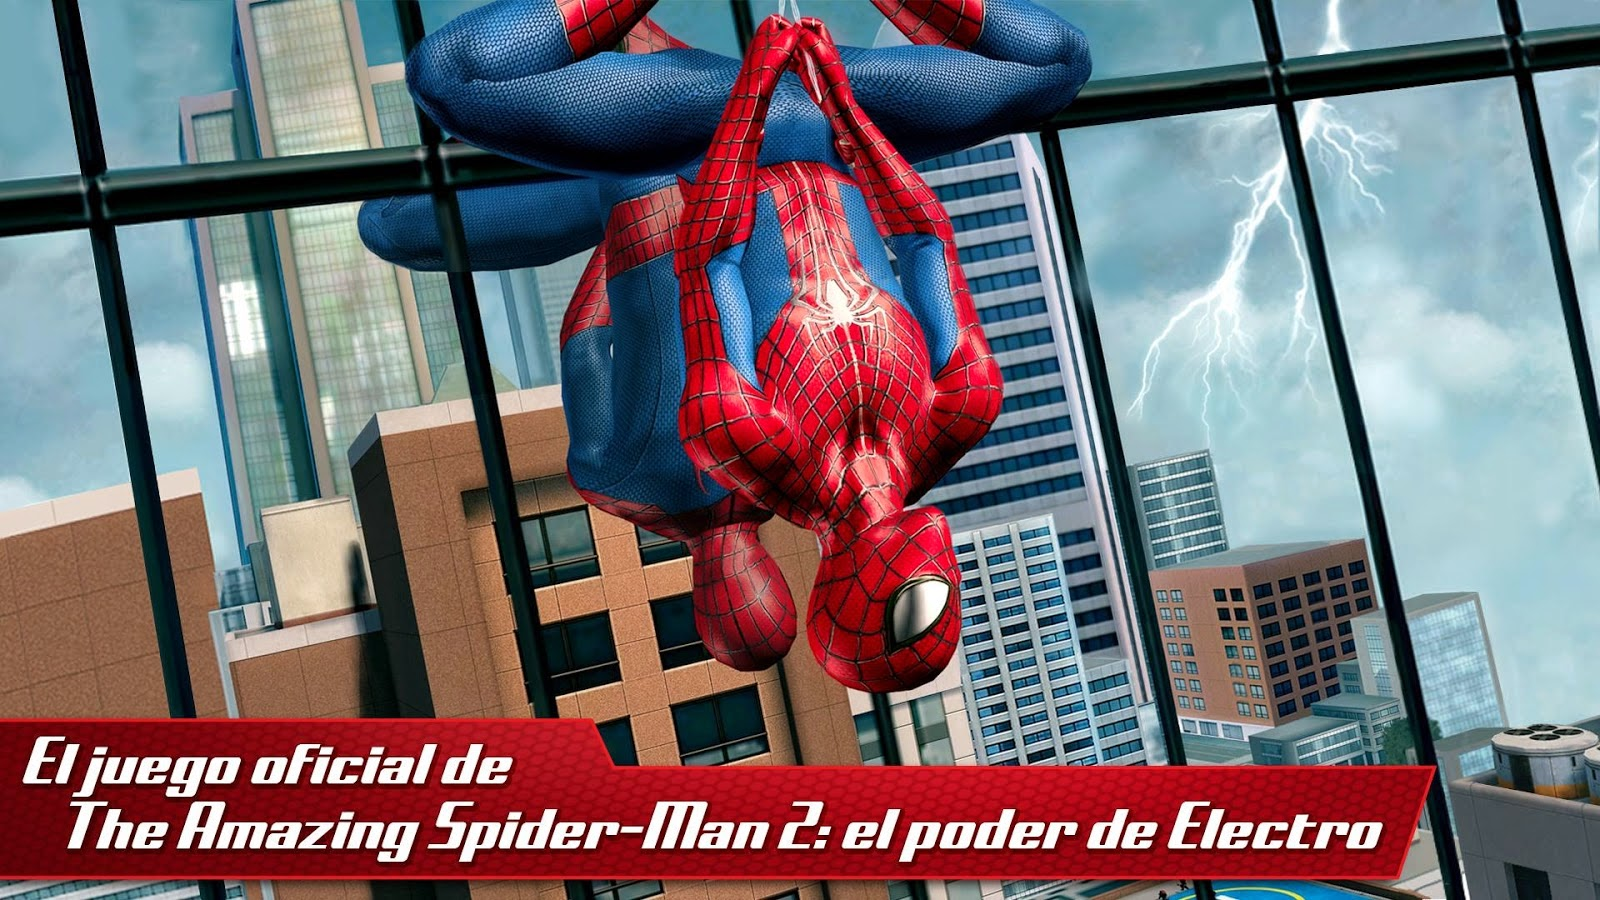 The Amazing Spider-Man 2 v.1.0.1j